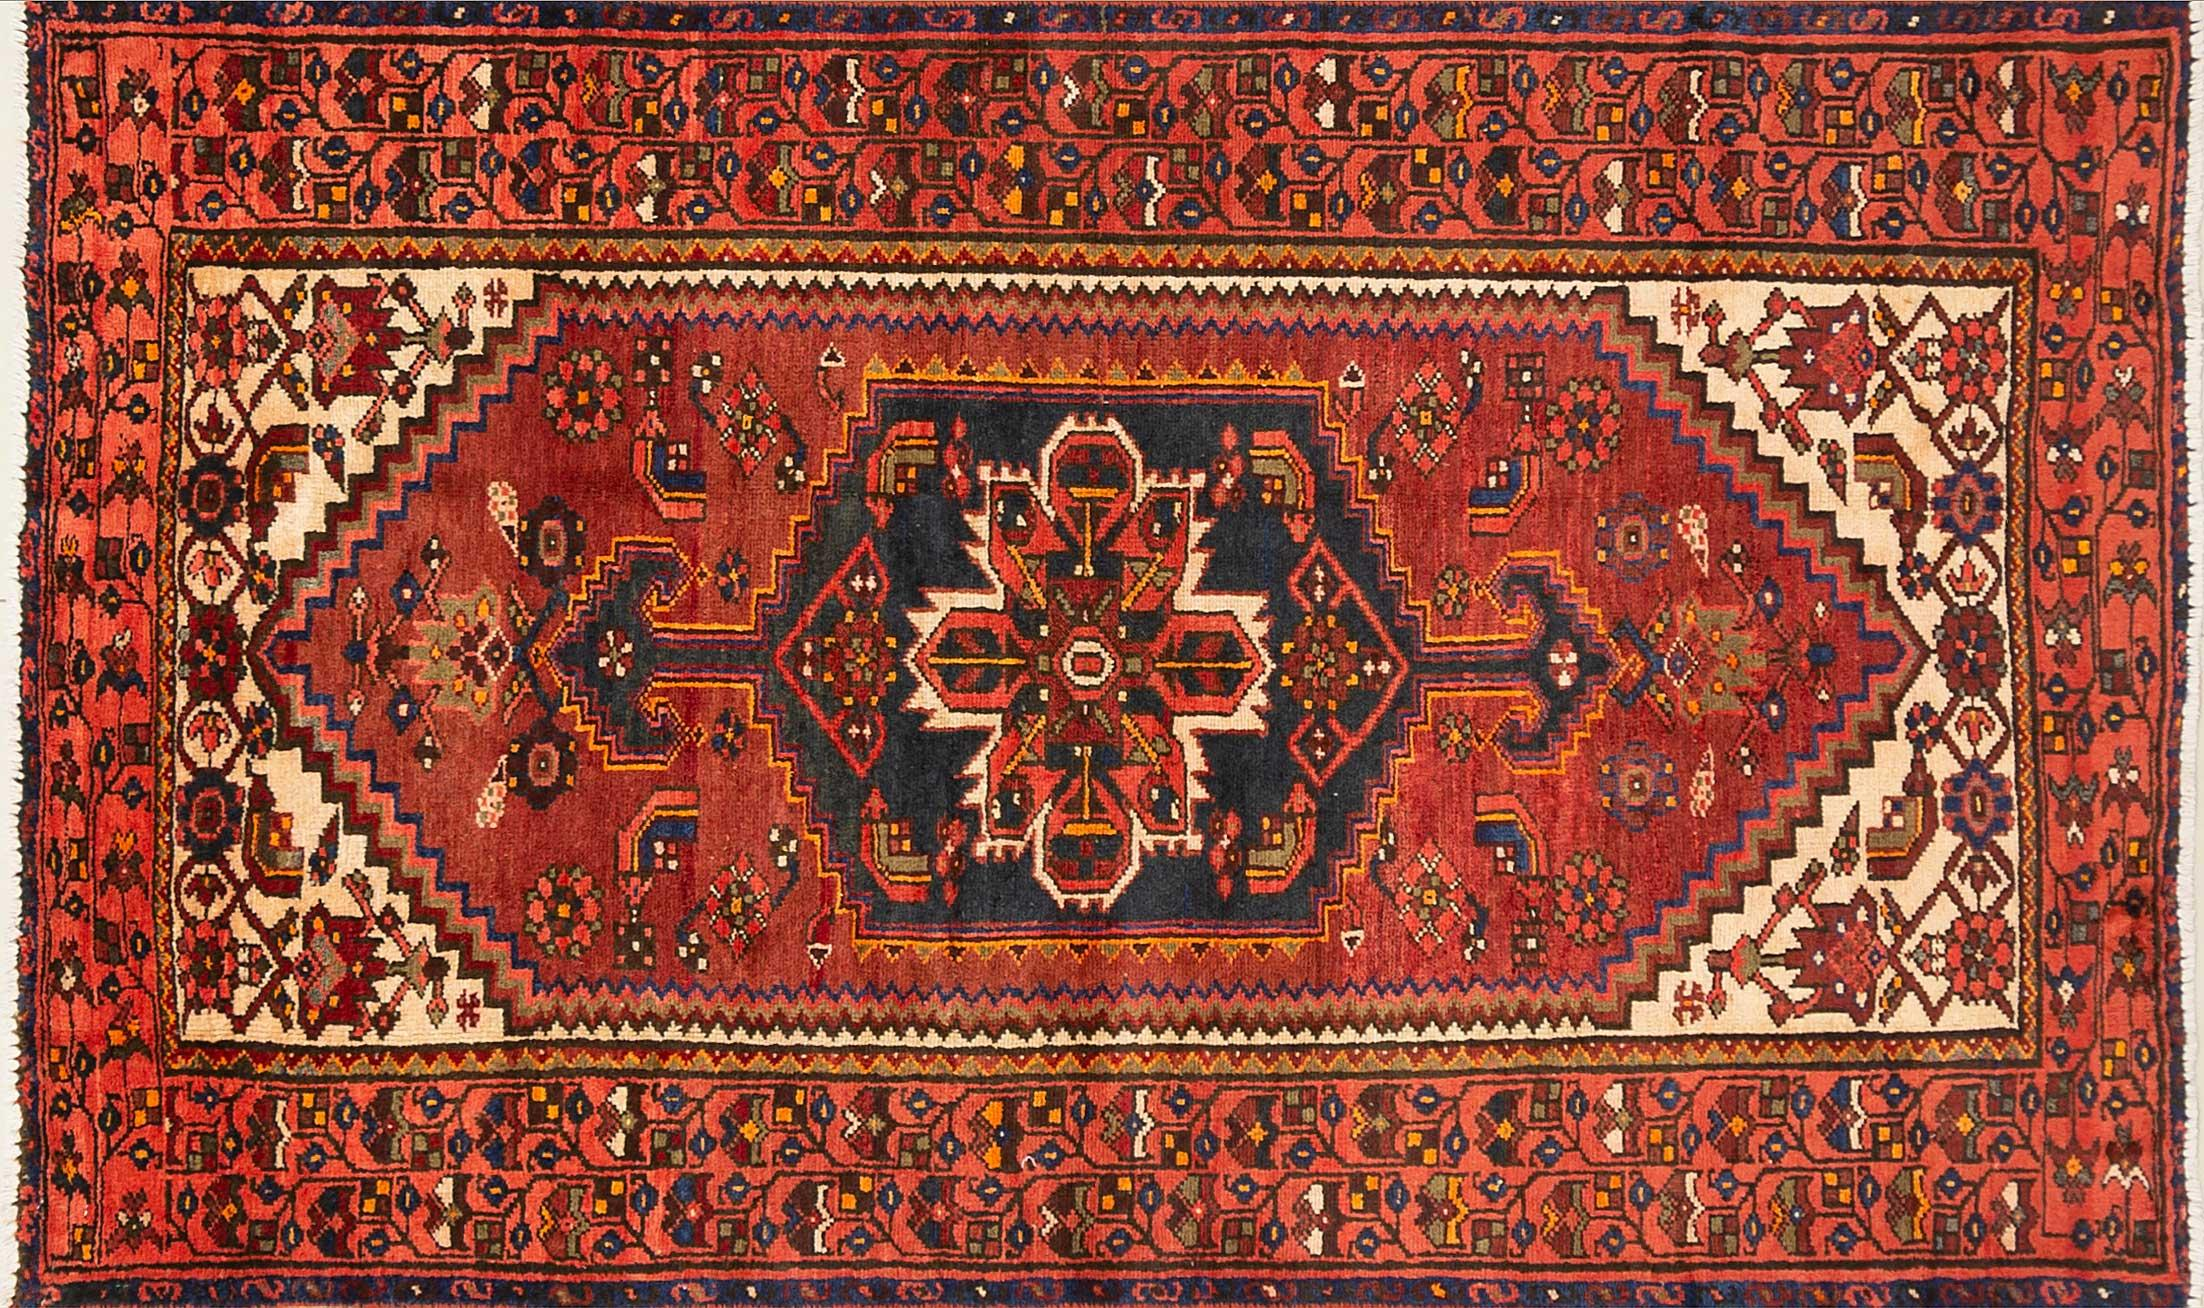 A Persian Hand Knotted Hamadan Rug, 200 x 120